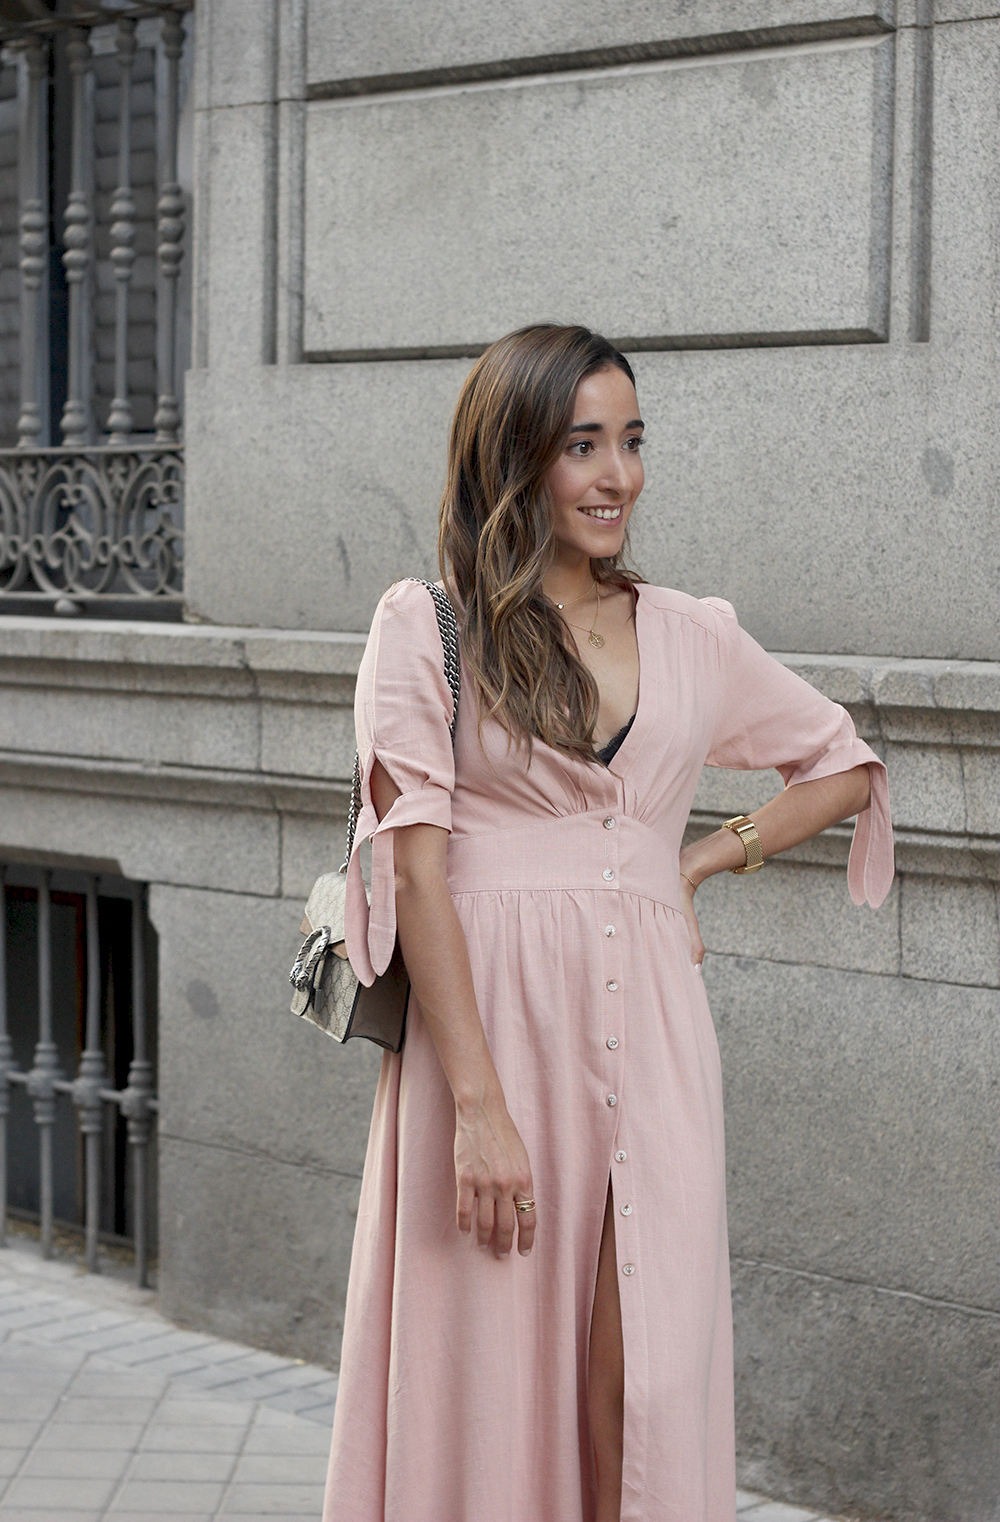 pink midi dress mules gucci bag outfit street style 201811